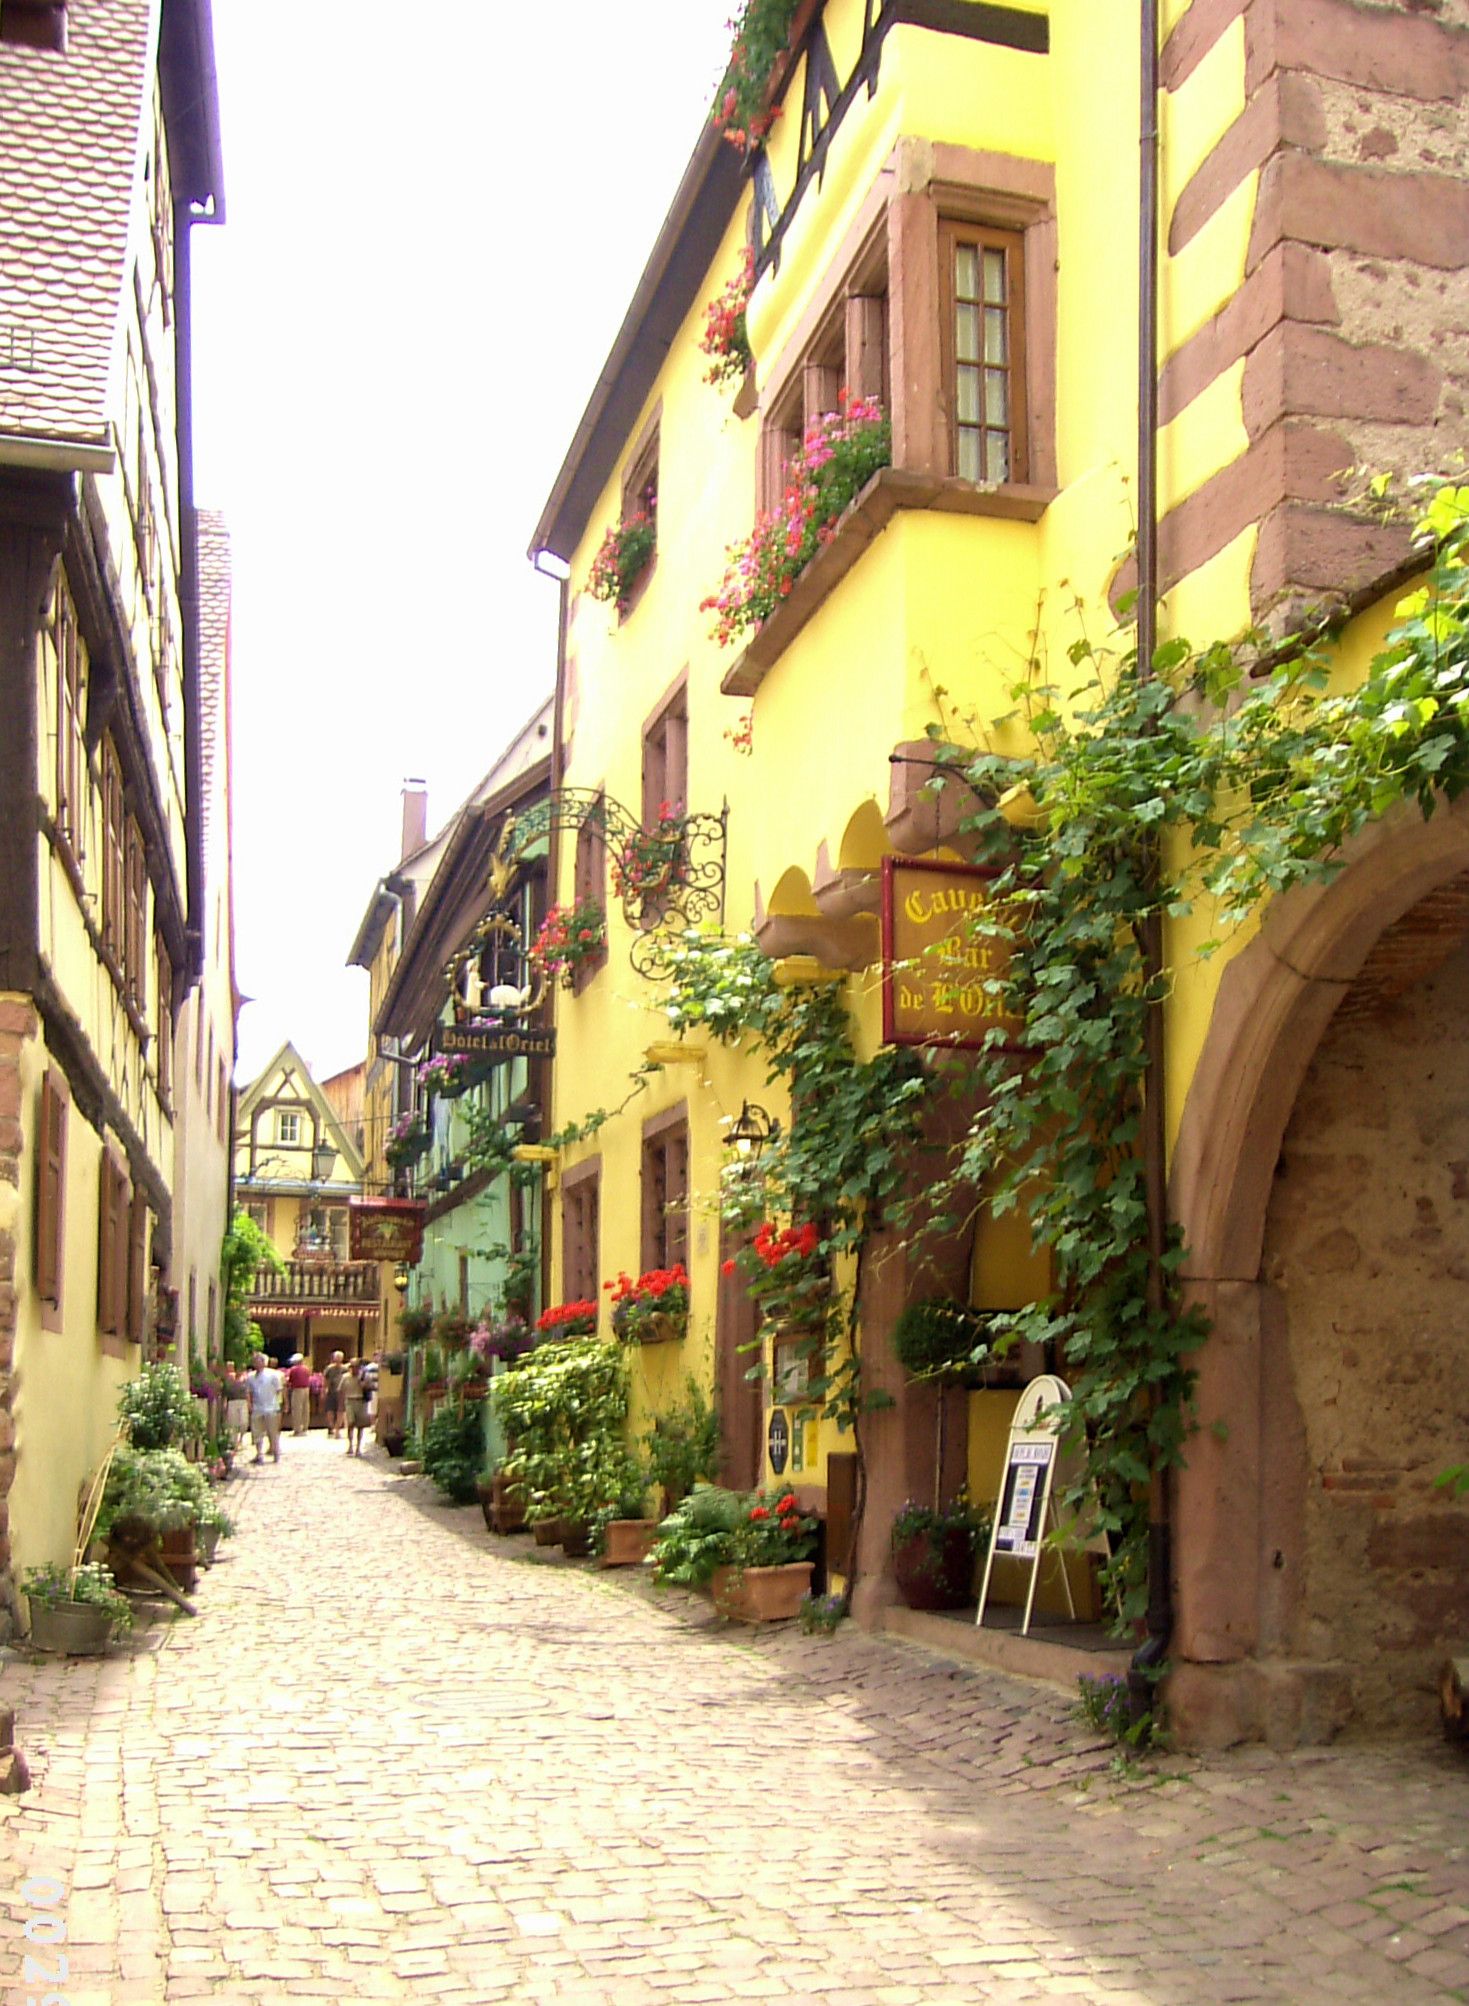 https://upload.wikimedia.org/wikipedia/commons/7/77/Riquewihr-2.jpg